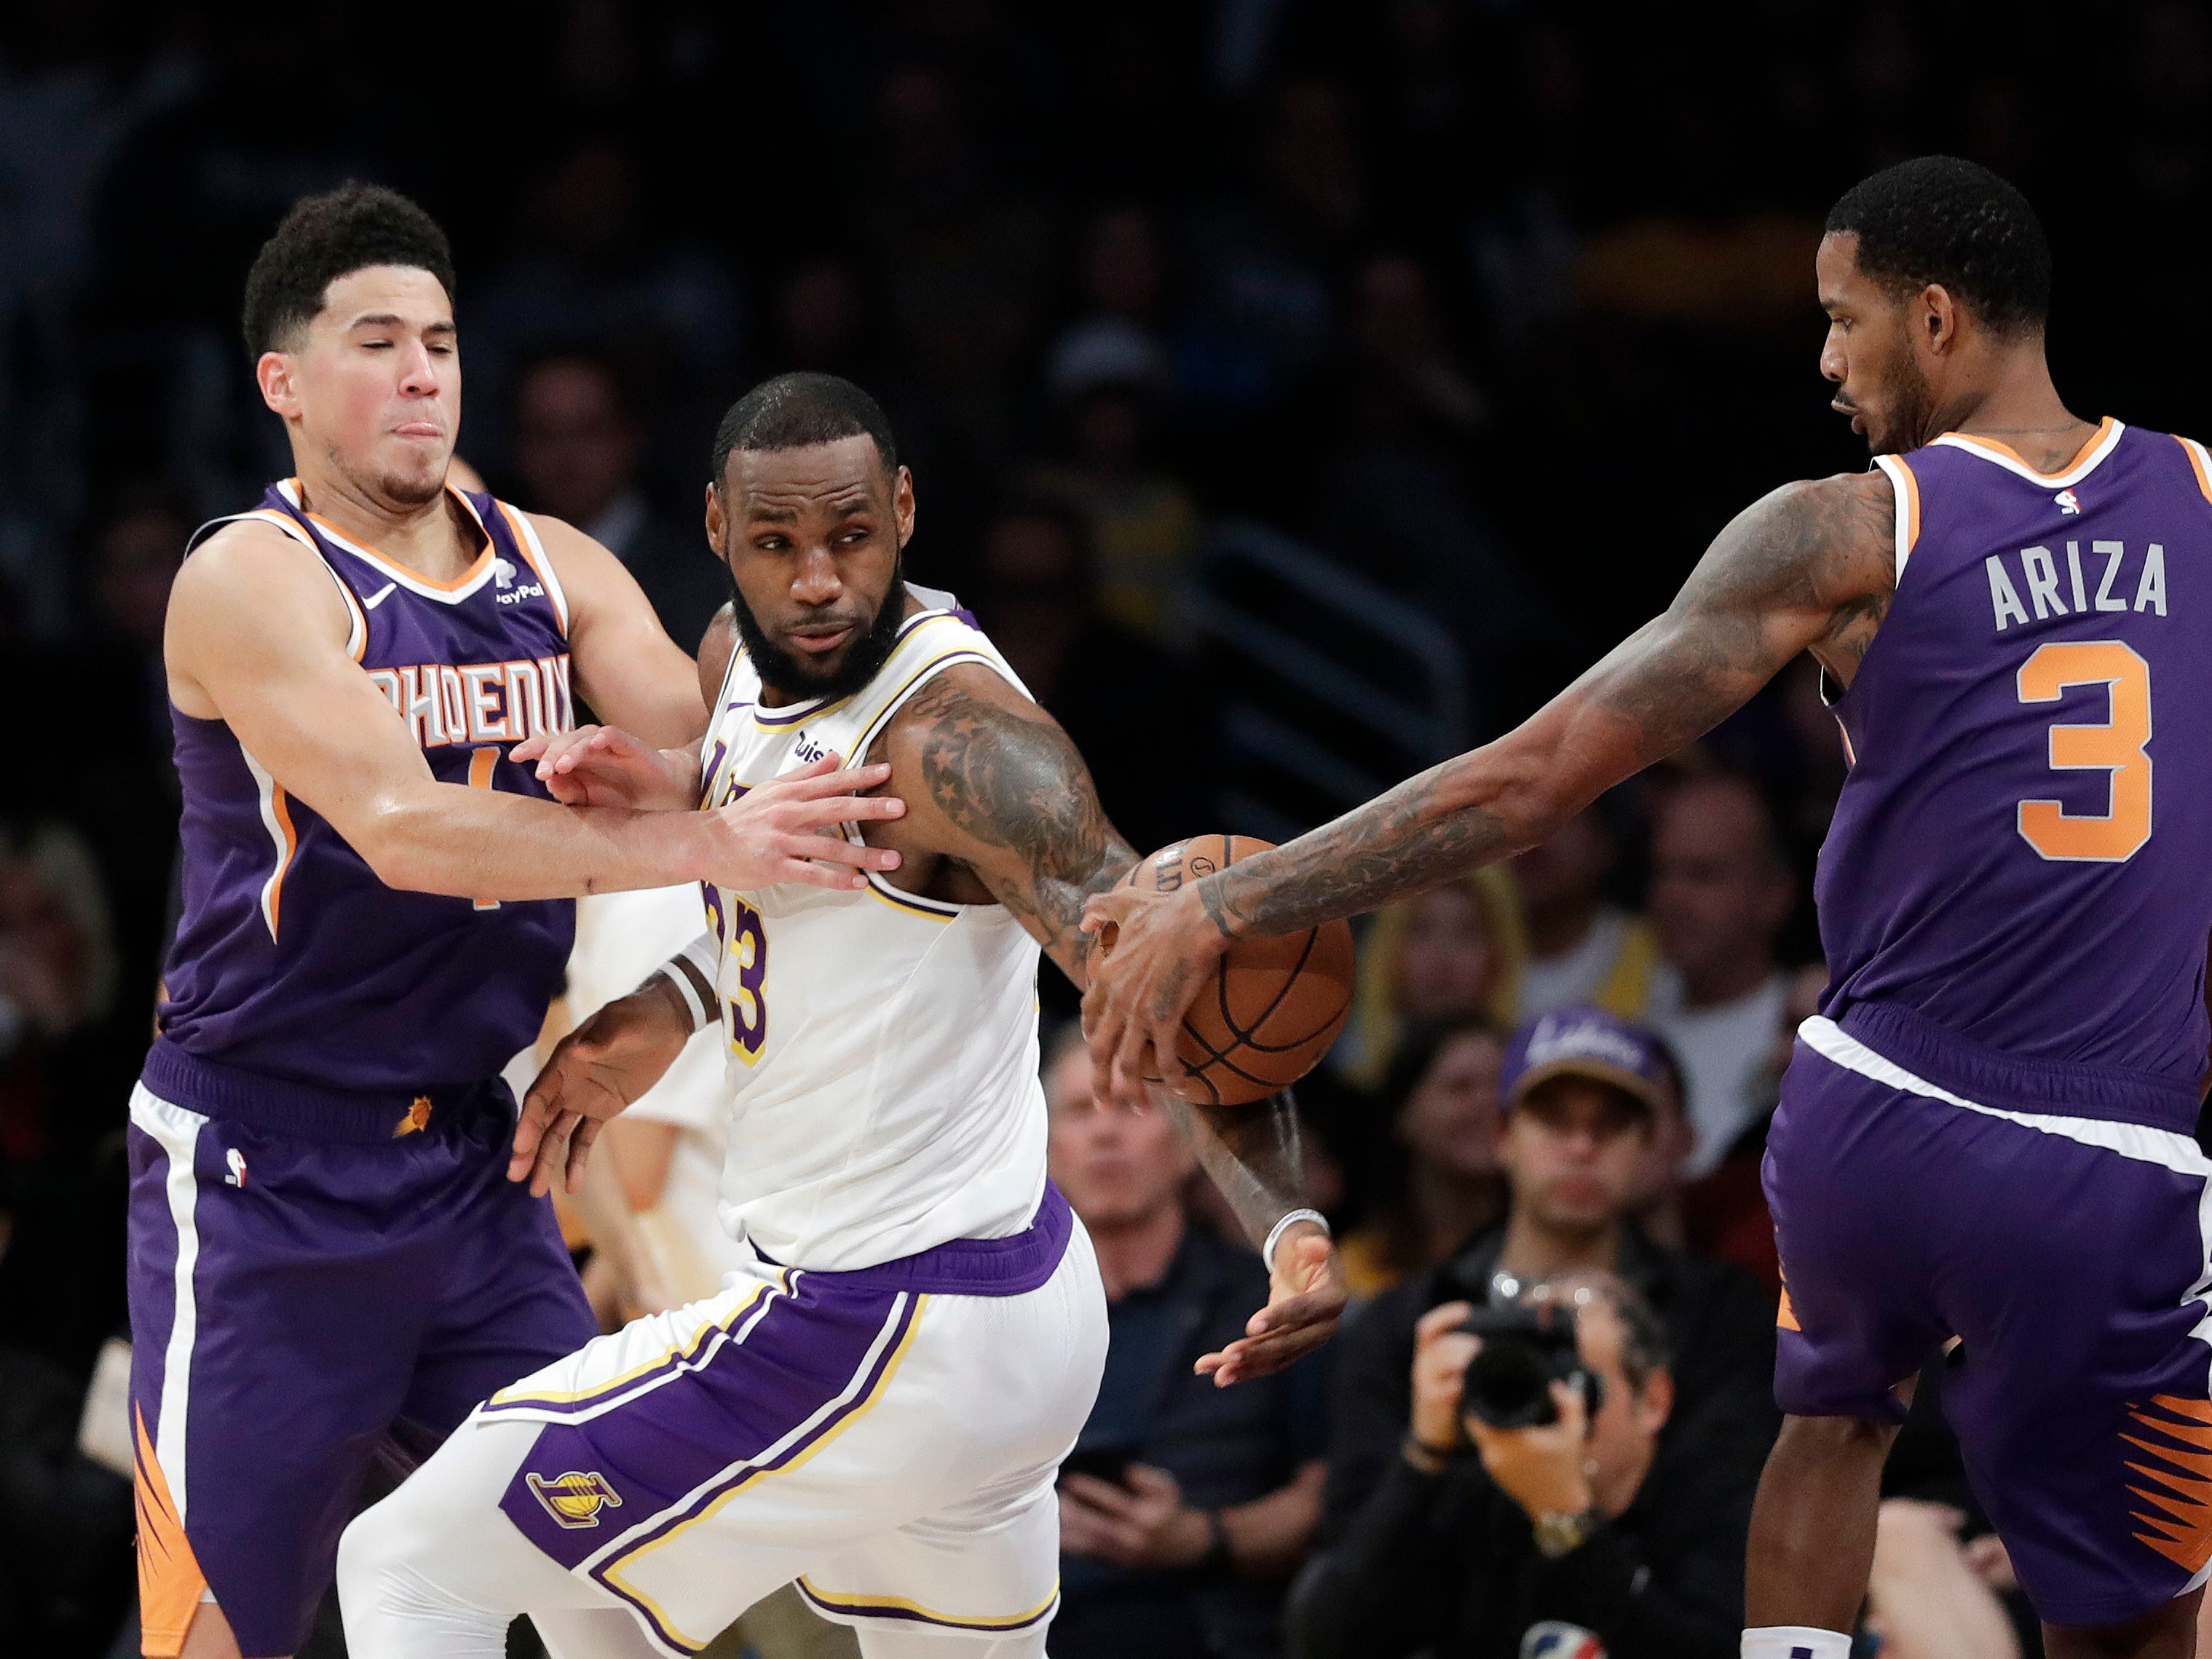 Phoenix Suns' Trevor Ariza (3) strips the ball from Los Angeles Lakers' LeBron James, center, during the first half of an NBA basketball game Sunday, Dec. 2, 2018, in Los Angeles. (AP Photo/Marcio Jose Sanchez)